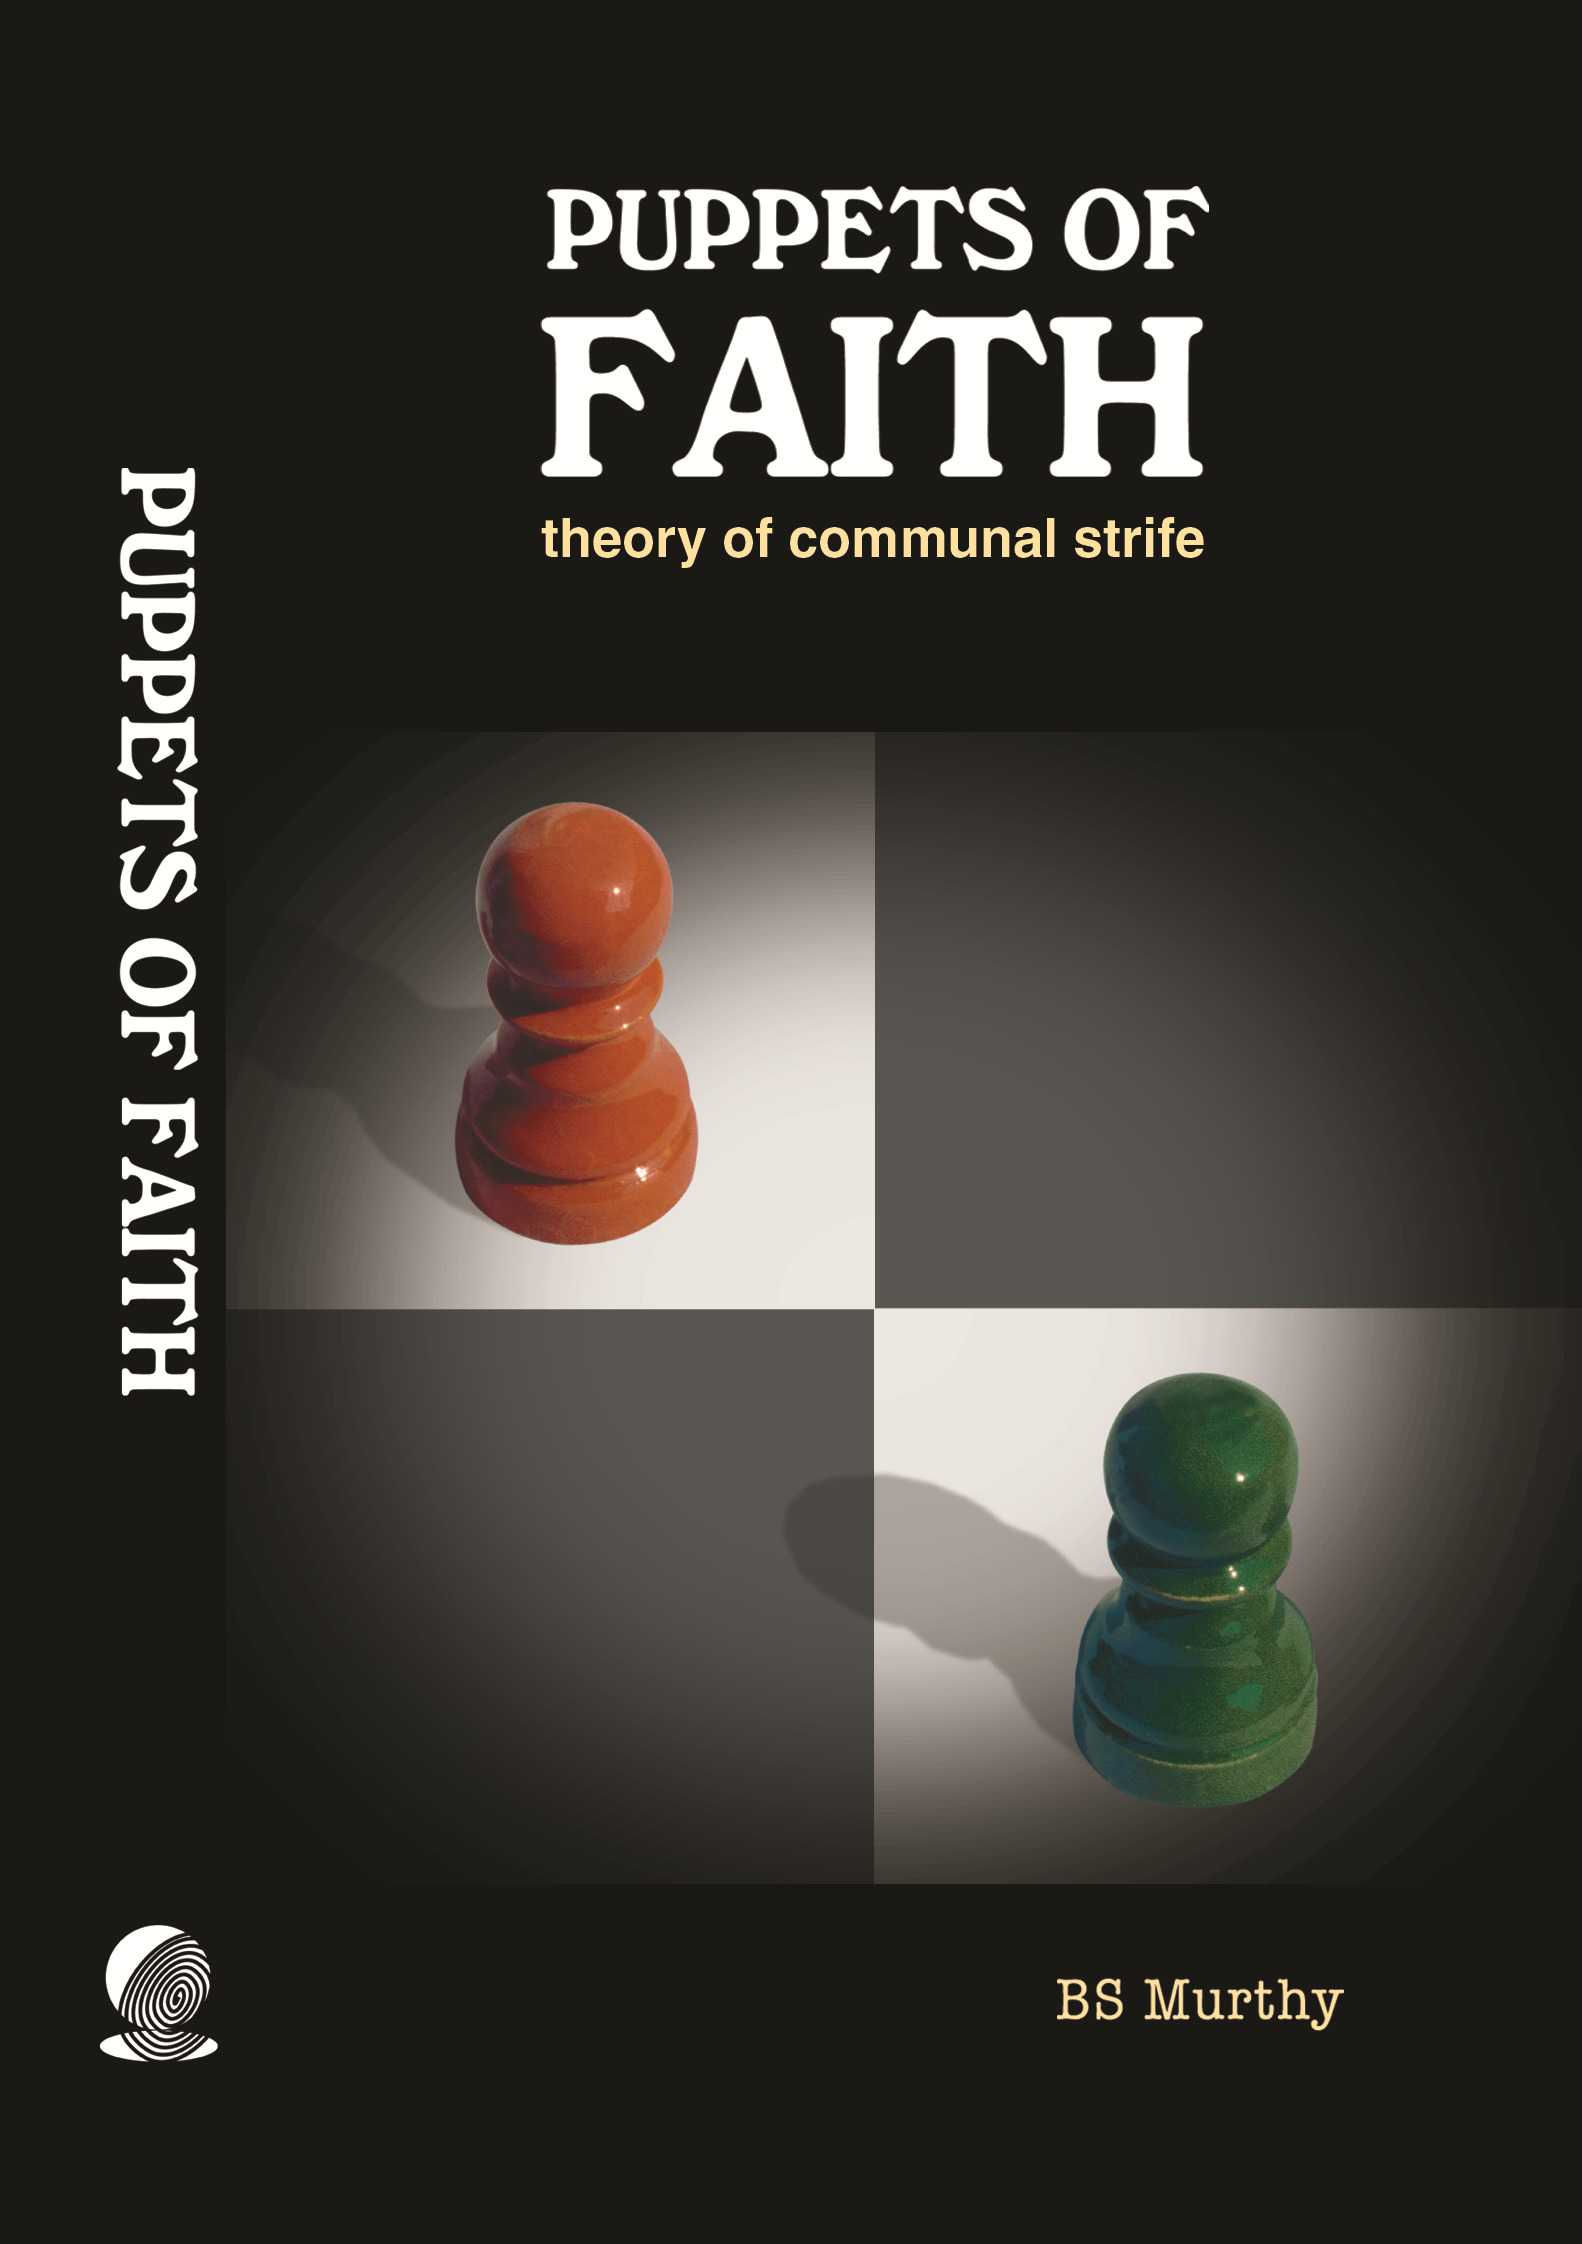 Puppets of Faith: Theory of Communal Strife